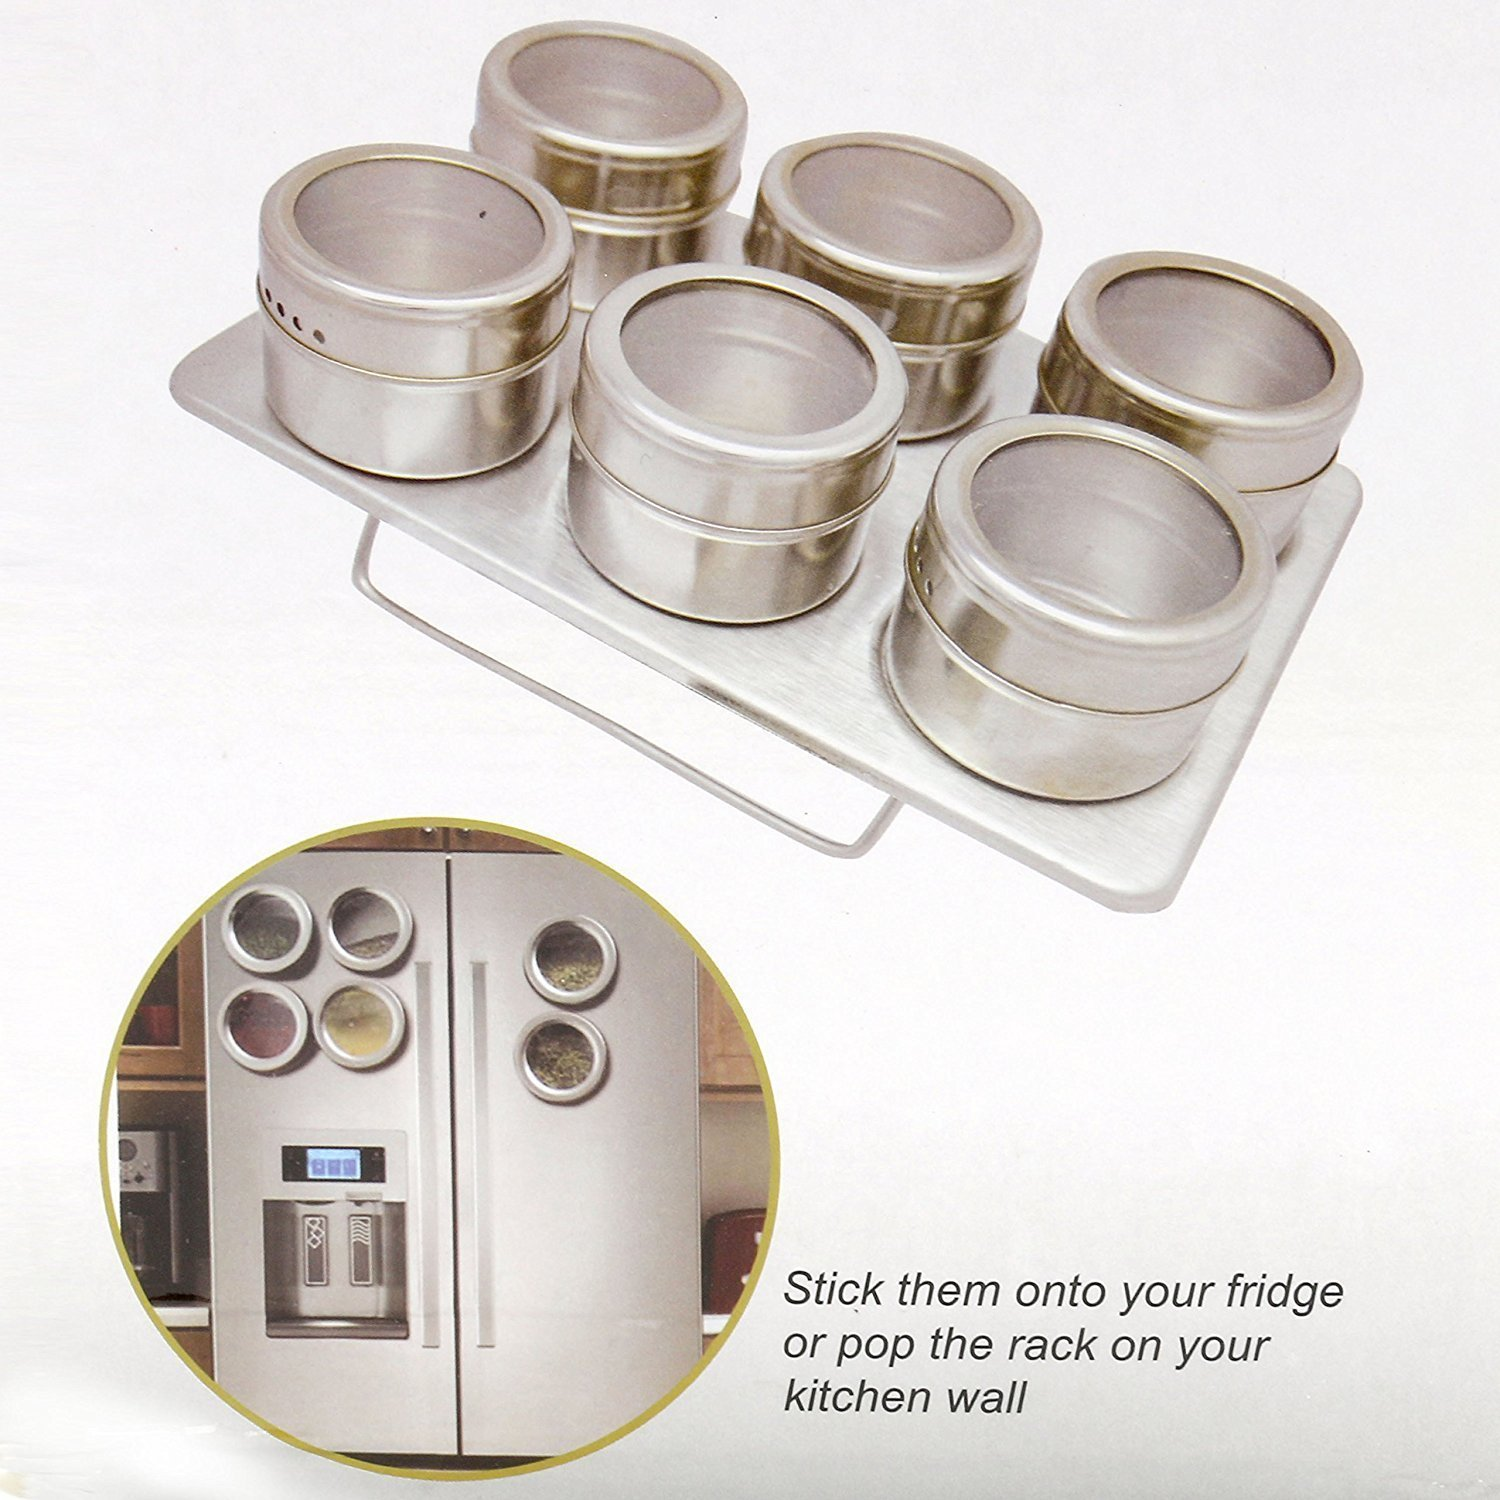 YaeKoo Stainless Steel Magnetic Multi-Purpose Spice Storage Tins, Set of 6,The Metal Salver Included Yaemart Corportation